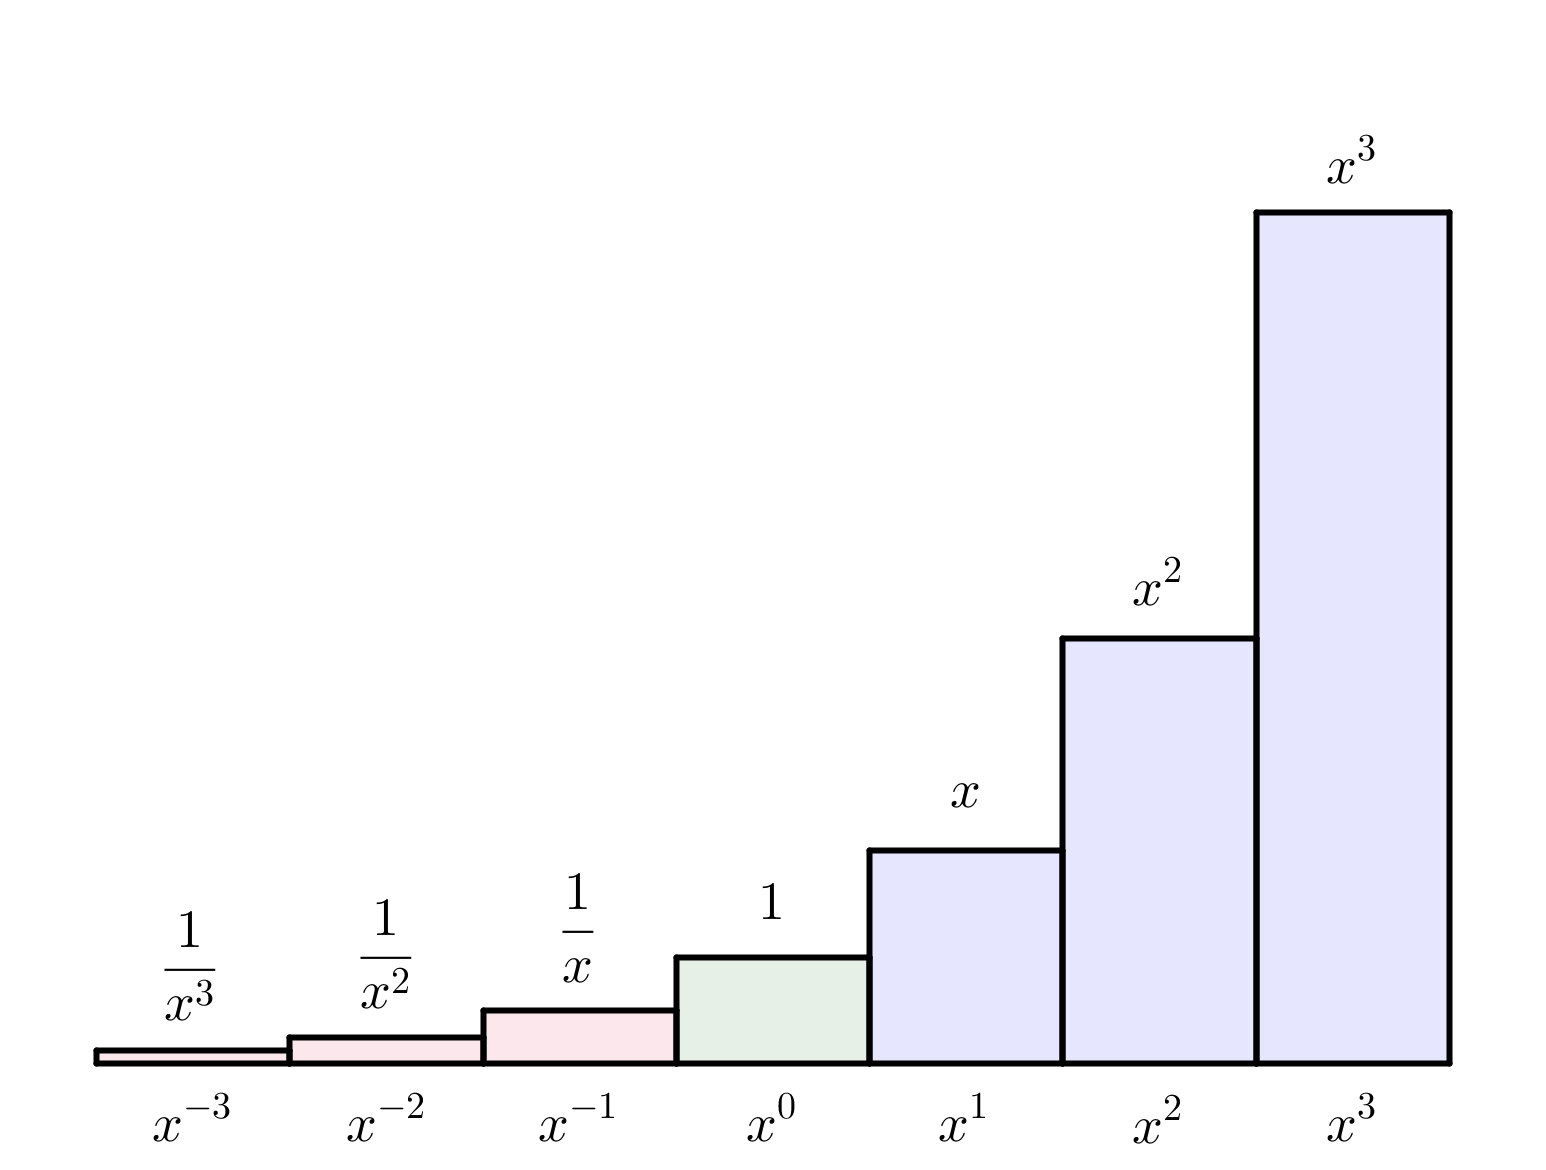 worksheet Negative Numbers With Exponents mathspace factor expressions with tricky exponents a smaller number than x 1 as we can visualize below and the greatest common of 2 and